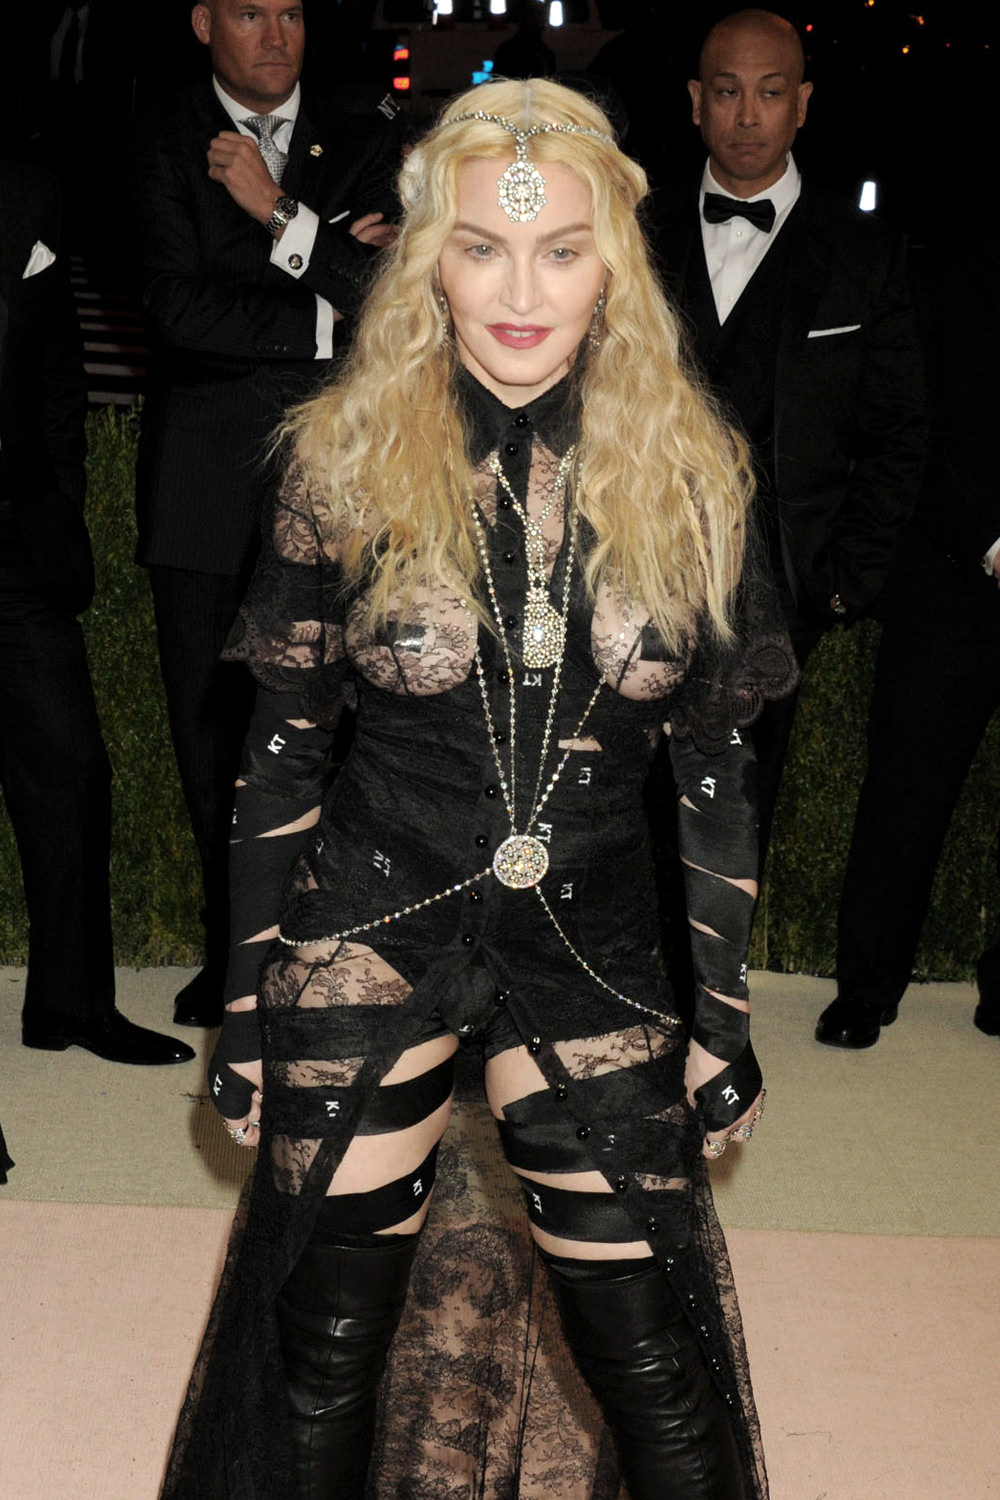 Madonna-Givenchy-Couture-2016-Met-Gala-Red-Carpet-Fashion-Givenchy-Couture-Tom-Lorenzo-Site (1)